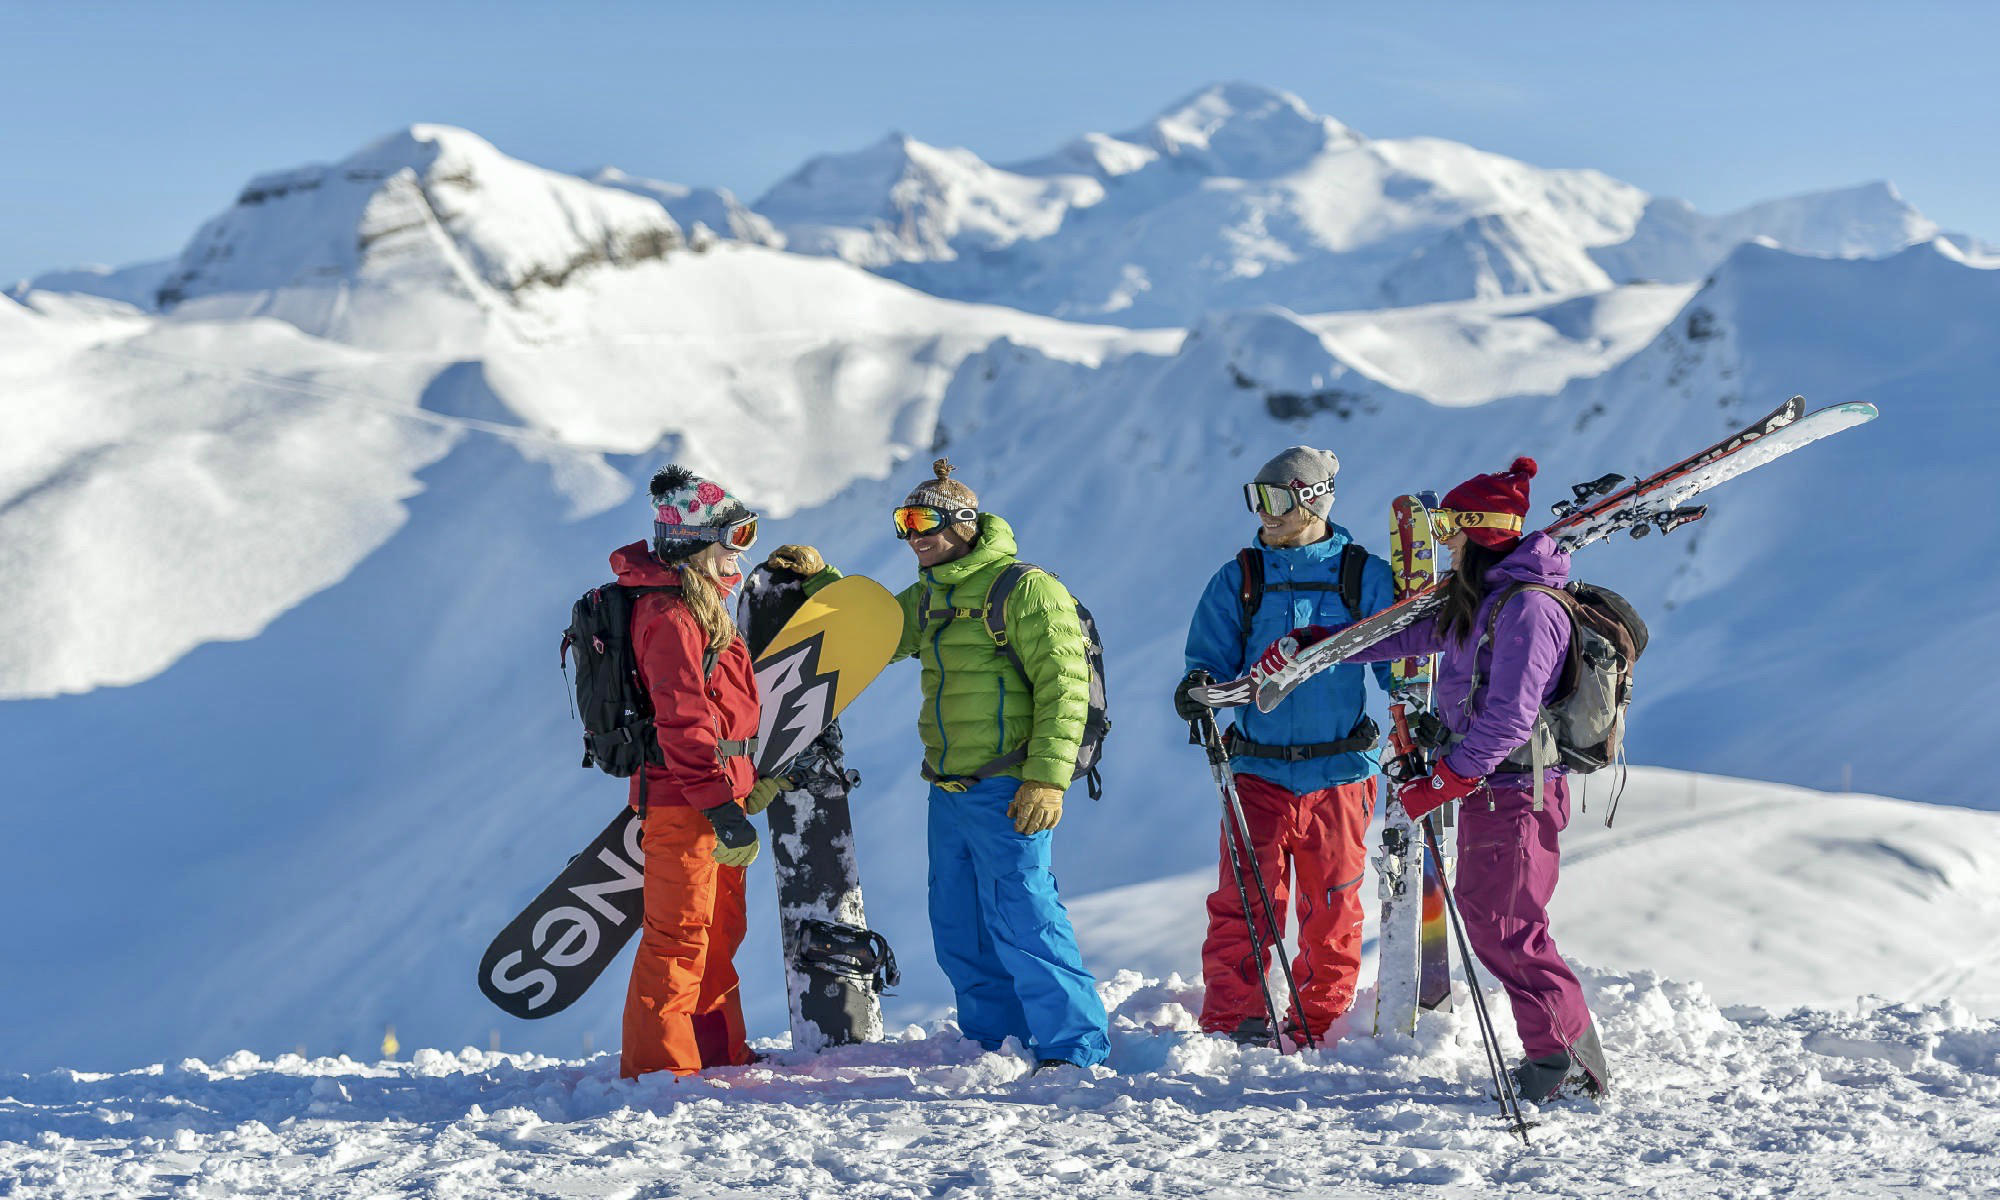 A group of skiers and snowboarders up on the mountains at Samoëns.